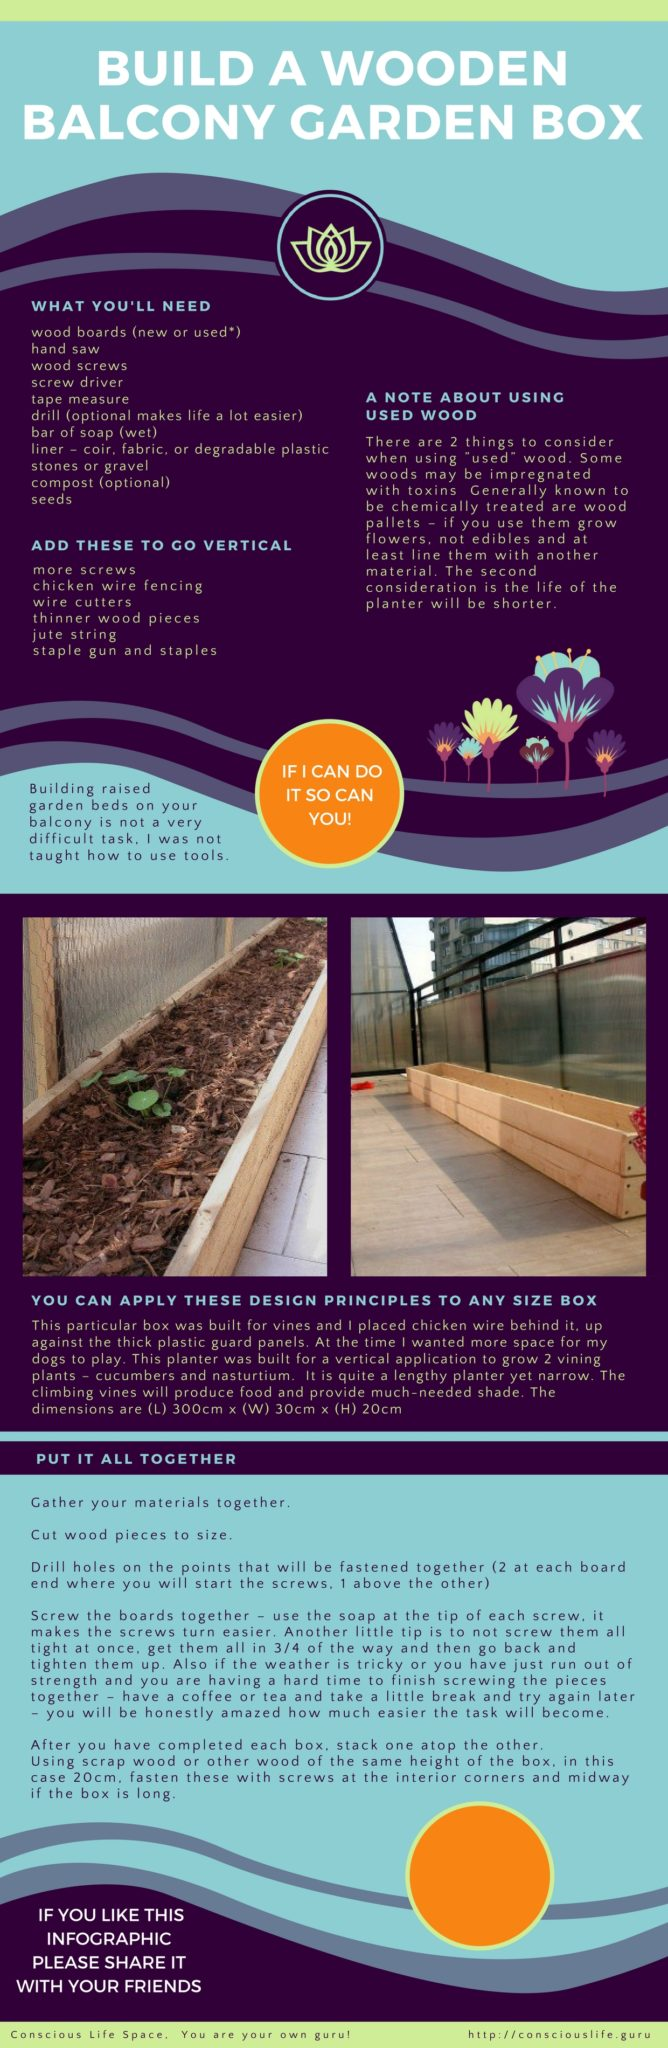 step by step how to build a wooden planter box for your city garden balcony